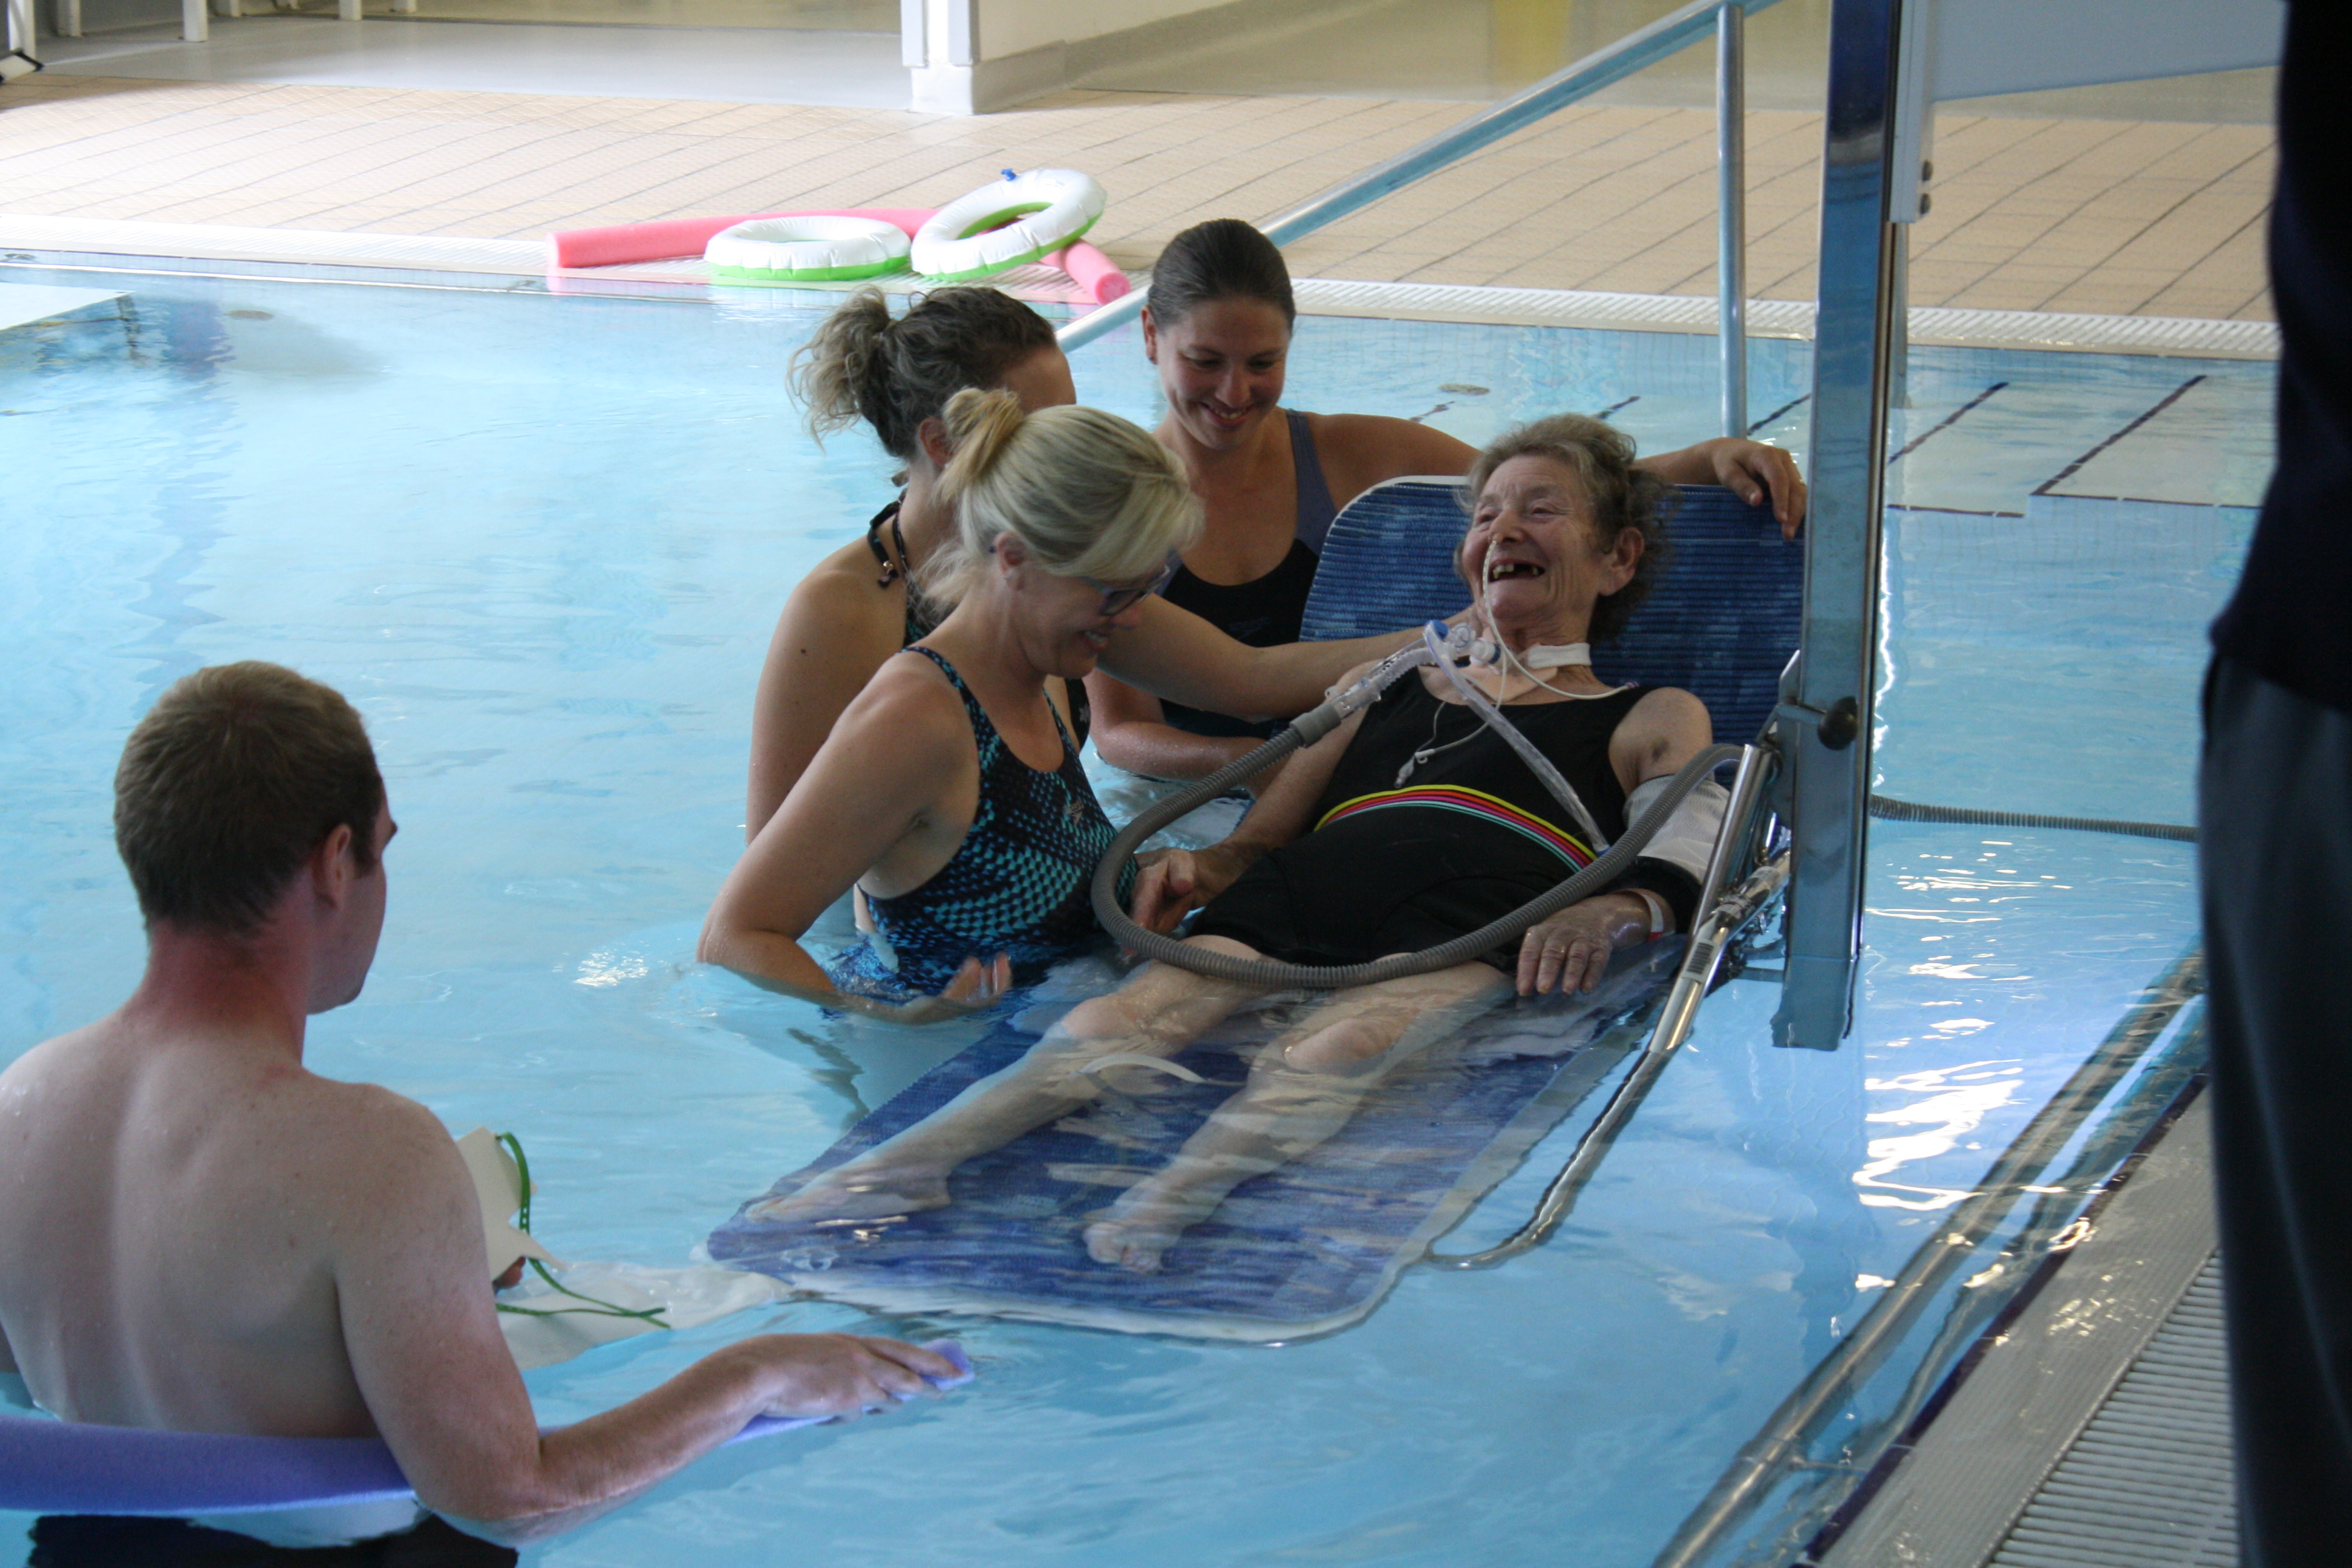 Patient treated in hydrotherapy pool on ventilator in QA first